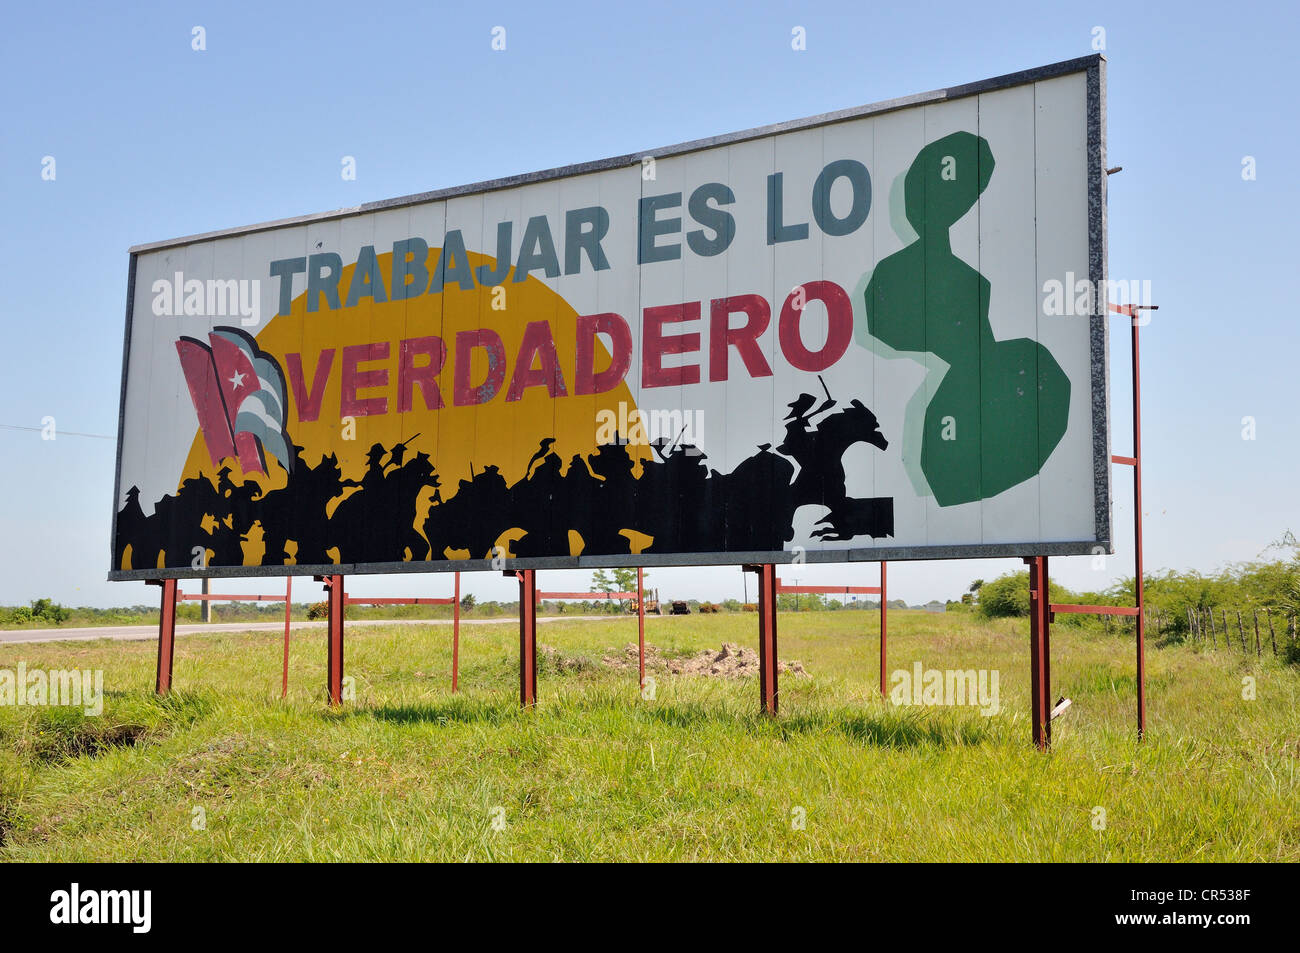 Revolutionary propaganda, 'Trabajar es lo verdadero', Spanish for 'work is the truth', near Camagueey, - Stock Image